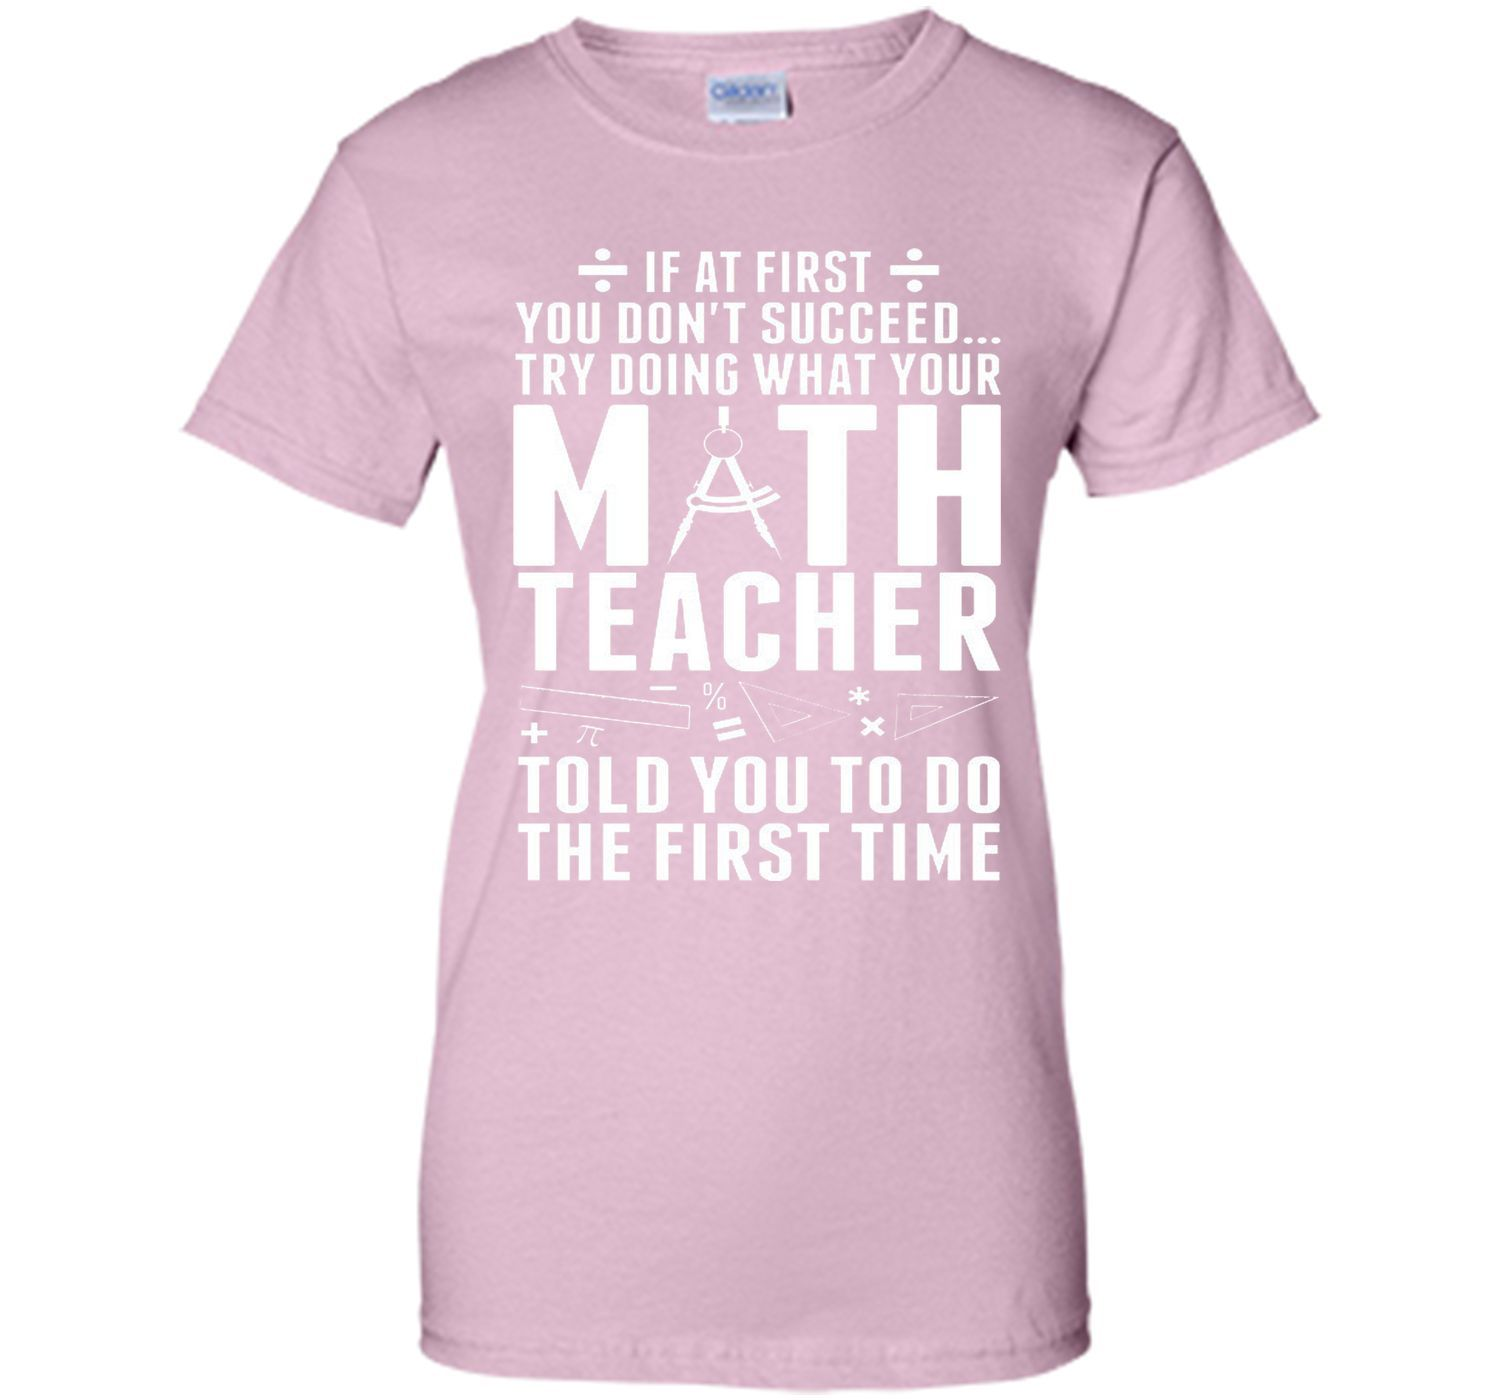 If at first you don't succeed try doing what your Math teacher told you to do the first time - T-shirts & Hoodies T-Shirt